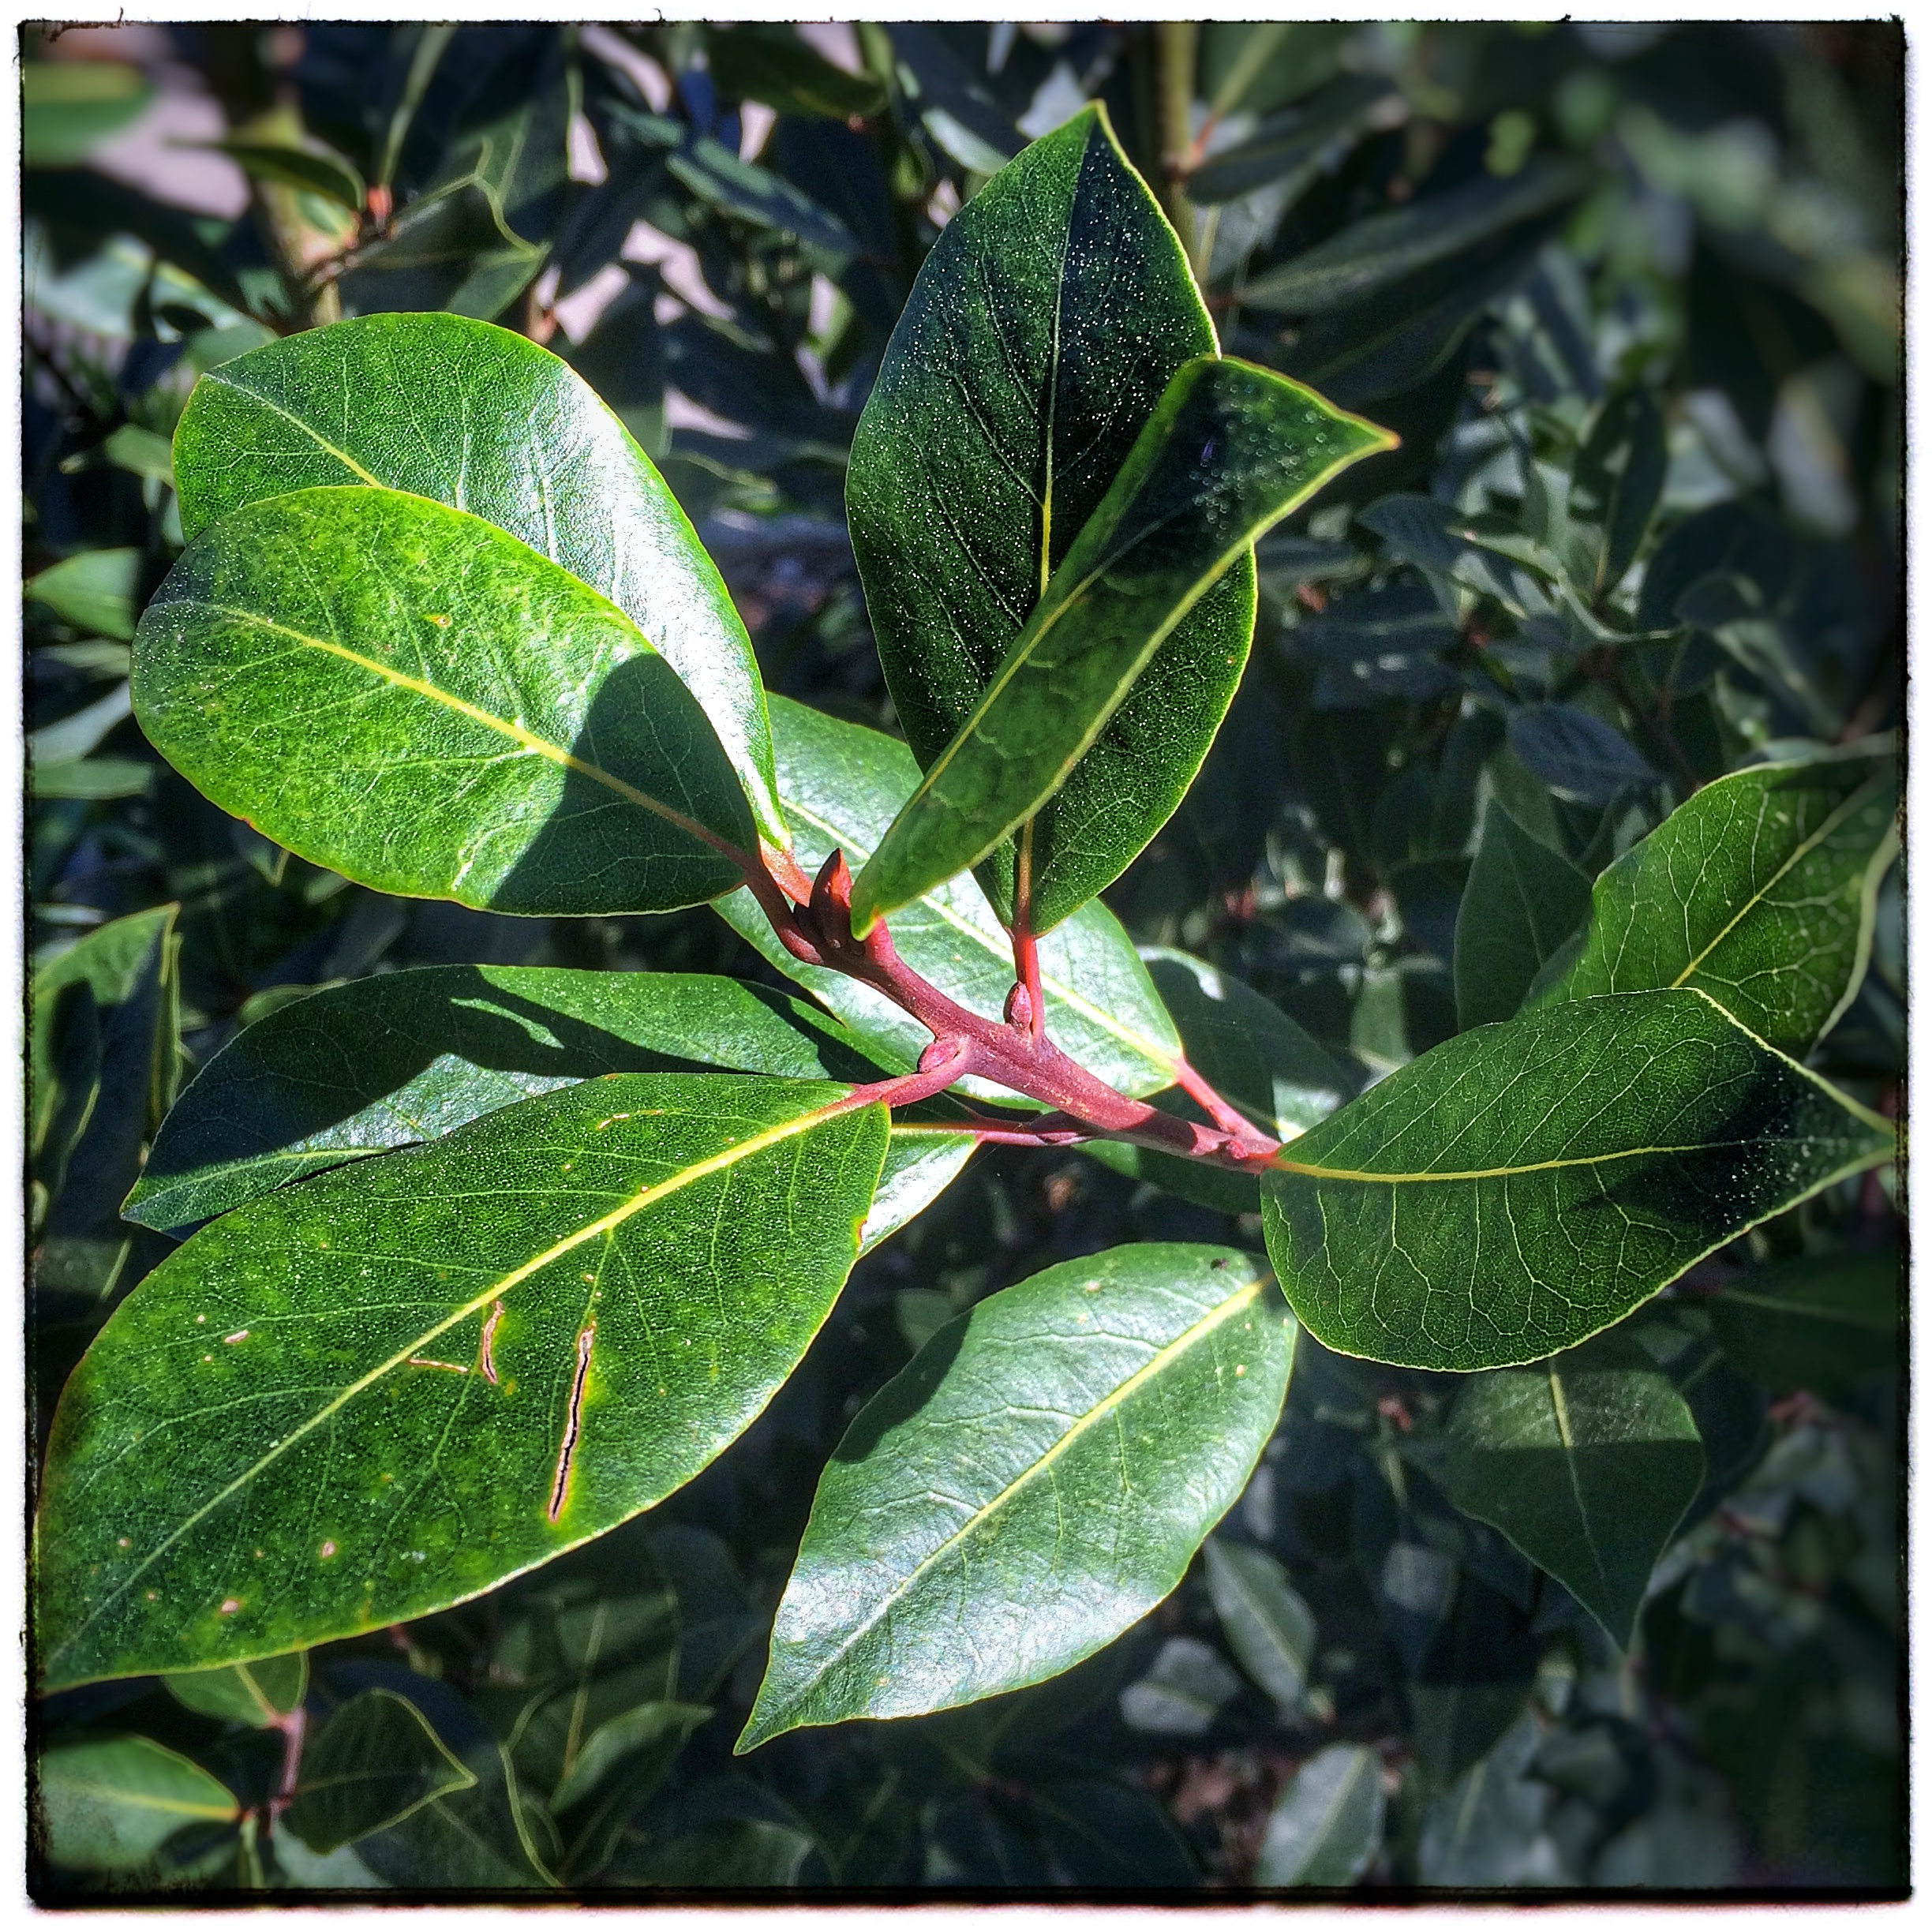 Bay Leaves on the Tree